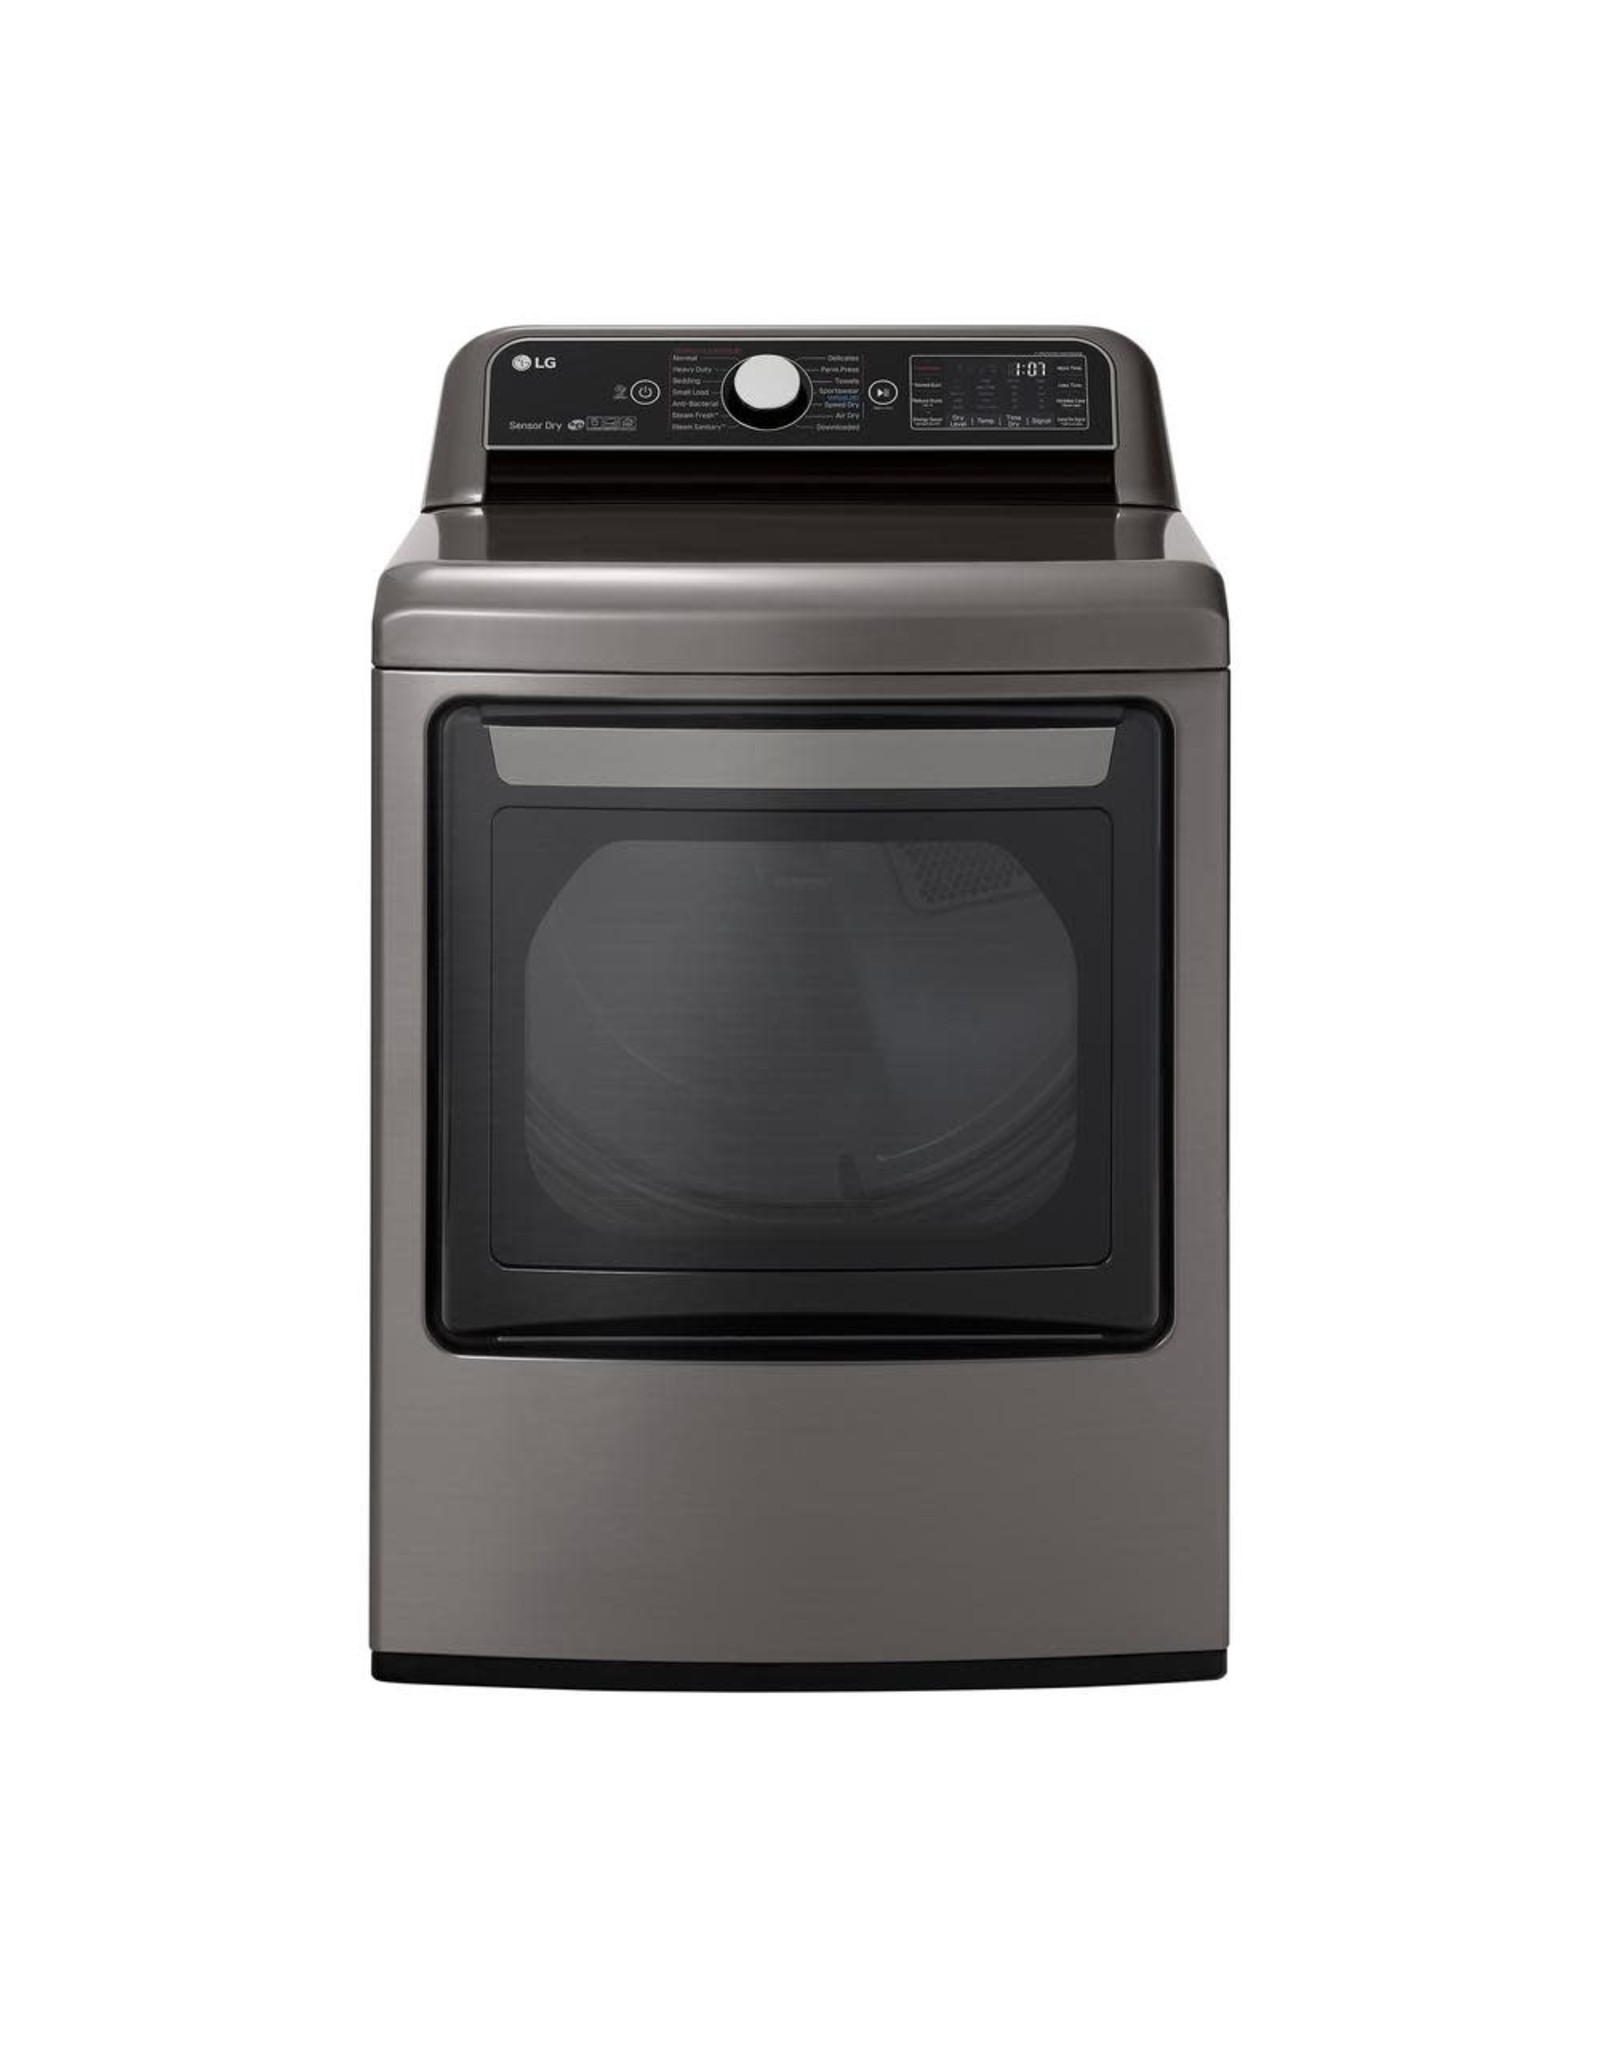 LG Electronics DLEX7800VE 7.3 cu. ft. Ultra Large Smart Front Load Electric Dryer w/ EasyLoad Door, TurboSteam & Wi-Fi Enabled in Graphite Steel